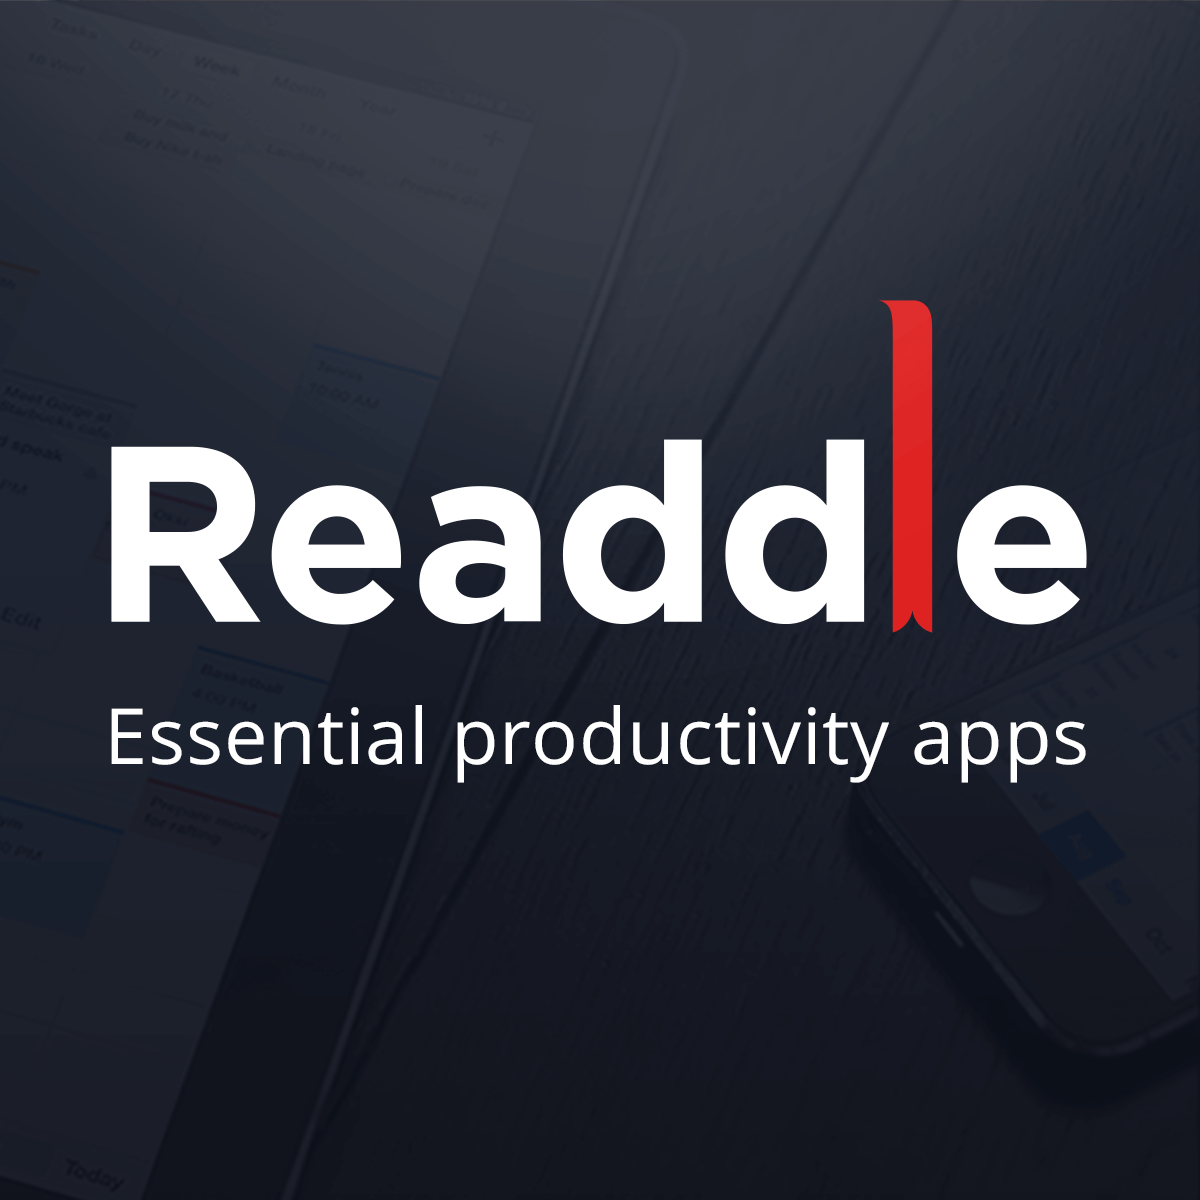 Best productivity apps for iPhone, iPad and Mac | Readdle